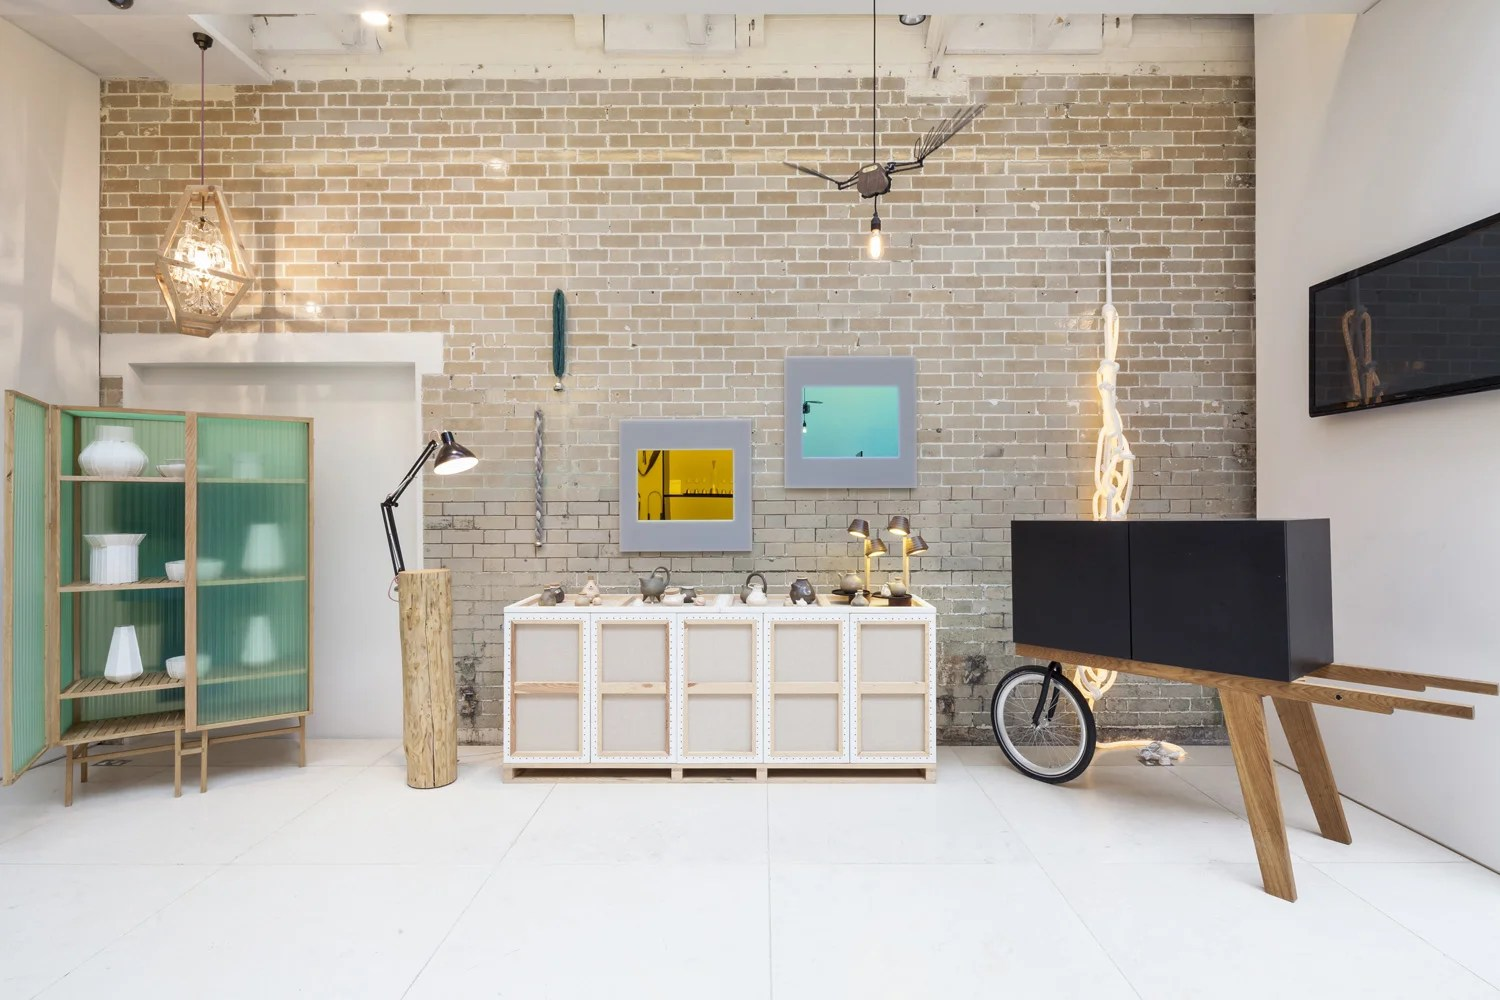 31 Of The Best Design And Interiors Shops In London